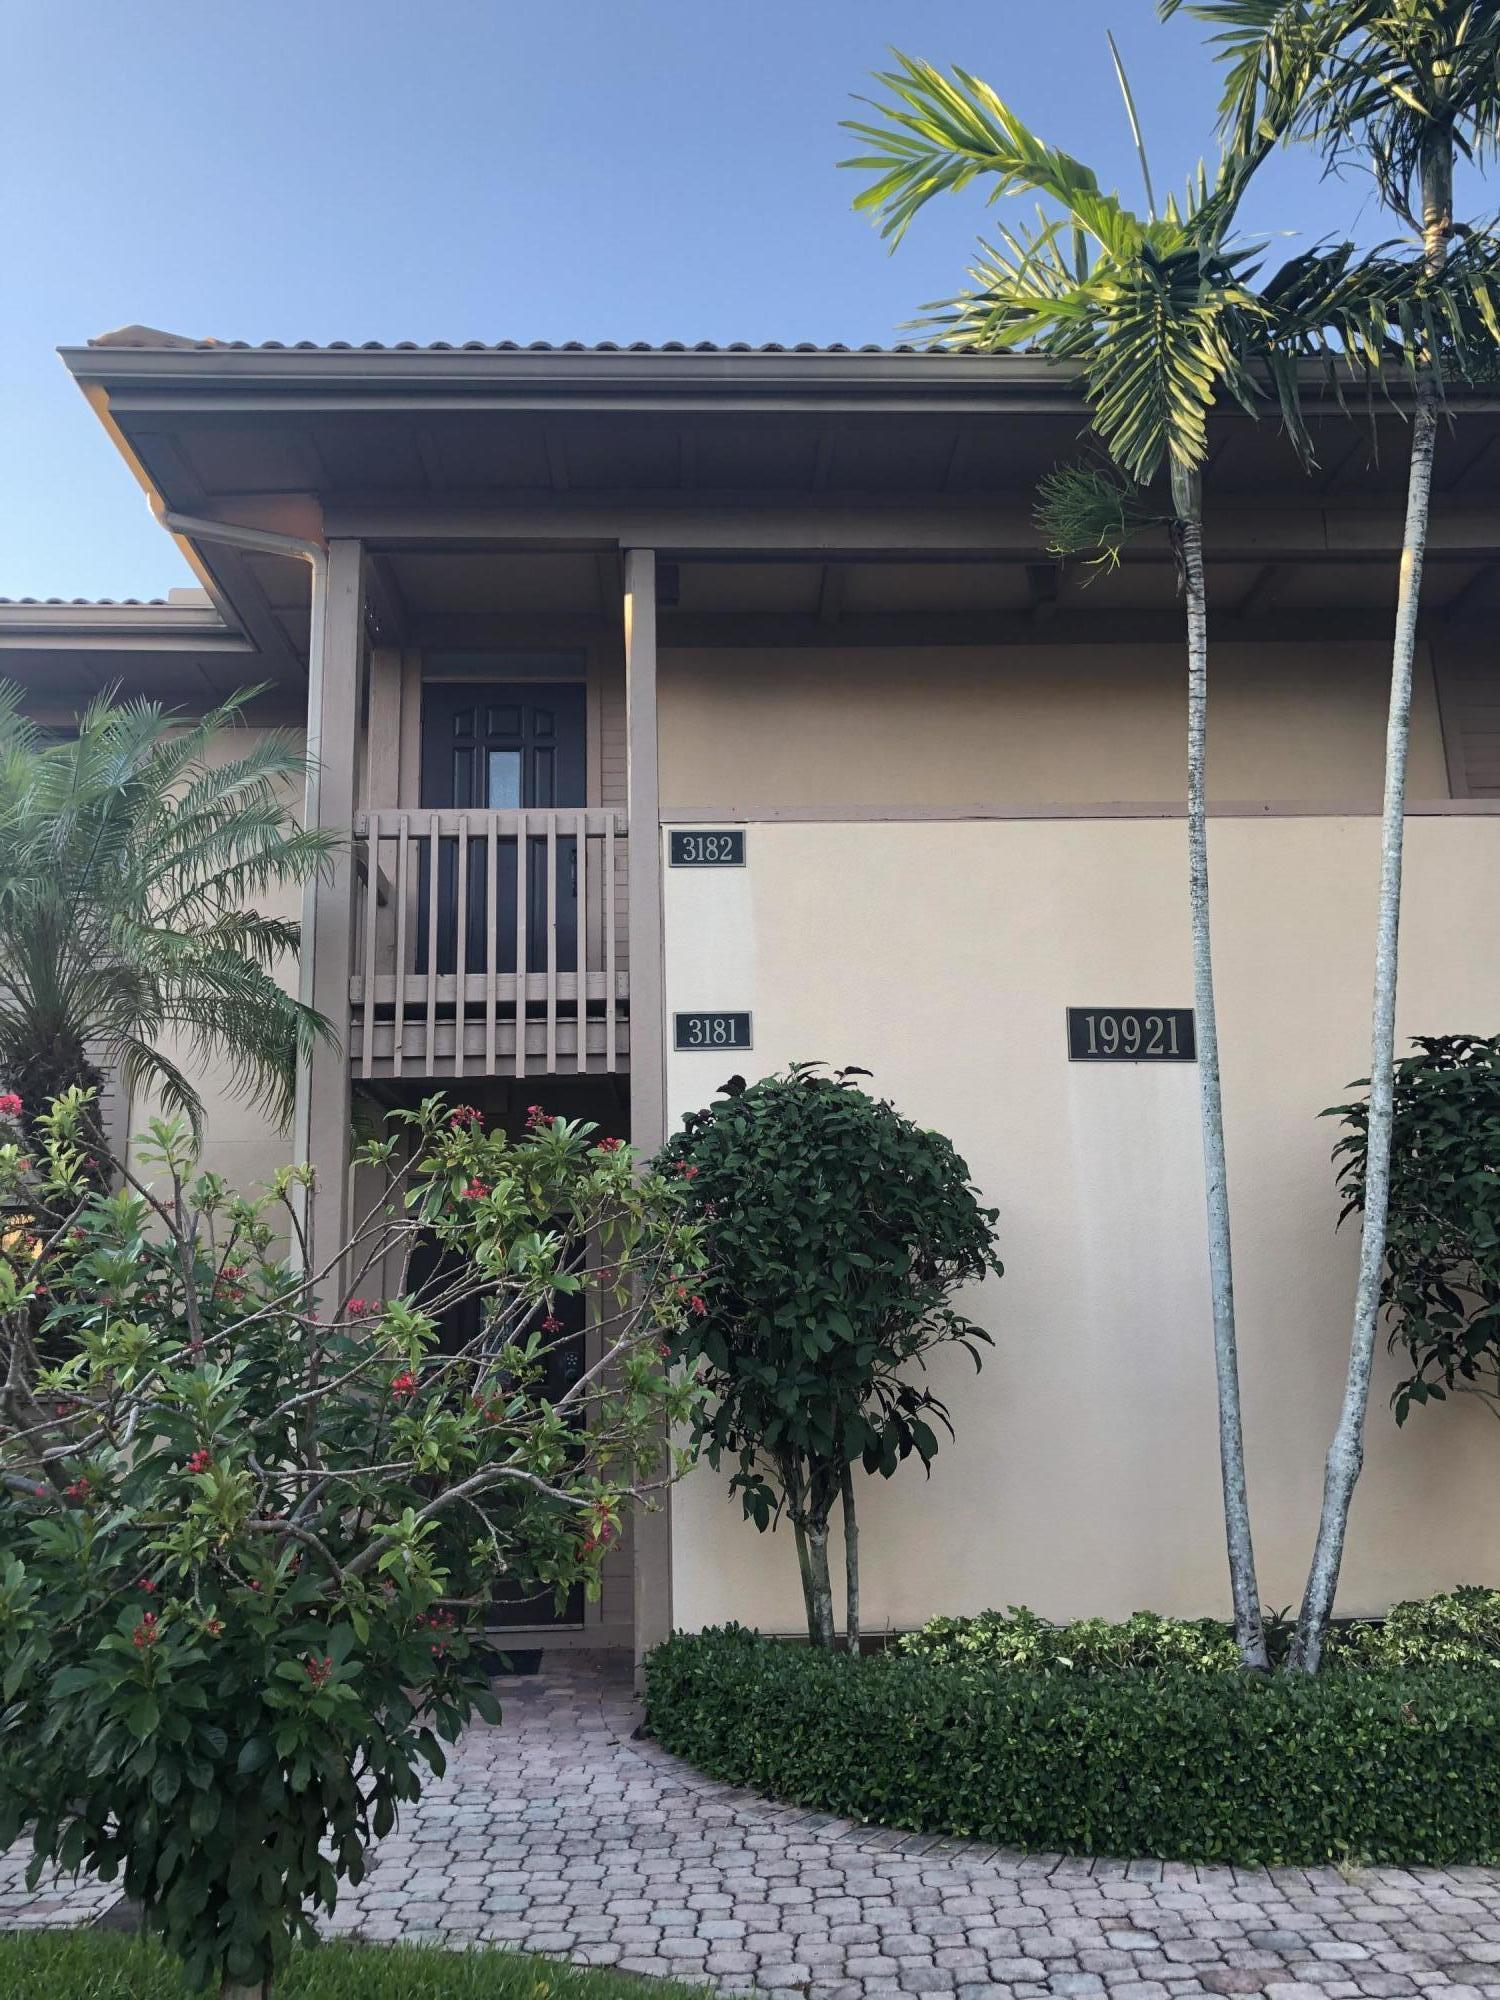 Photo of 19921 Boca West Drive #3182, Boca Raton, FL 33434